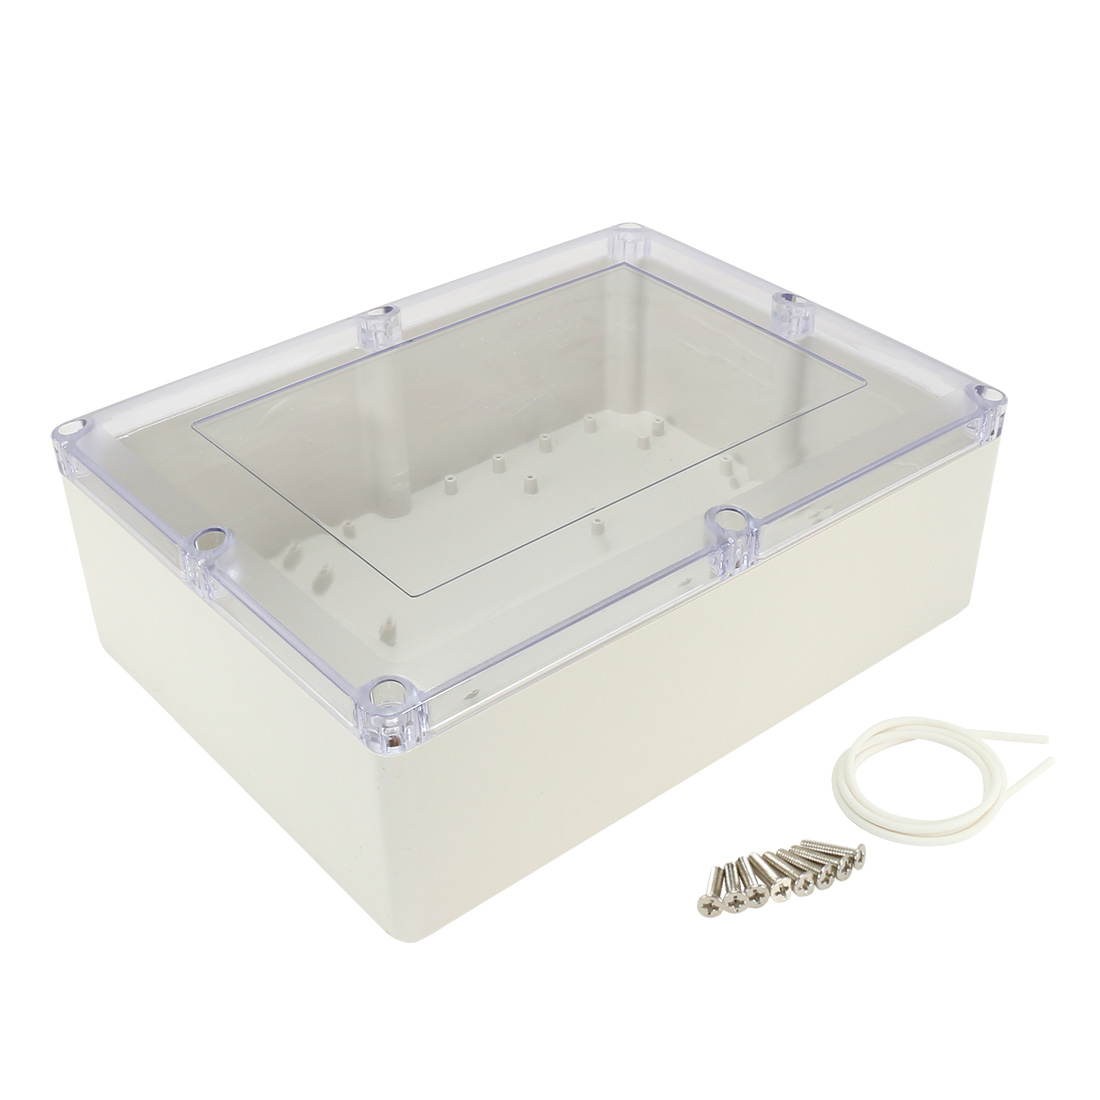 """12.6""""x9.5""""x4.3""""(320mmx240mmx110mm) ABS Junction Box Universal Project Enclosure w PC Transparent Cover"""